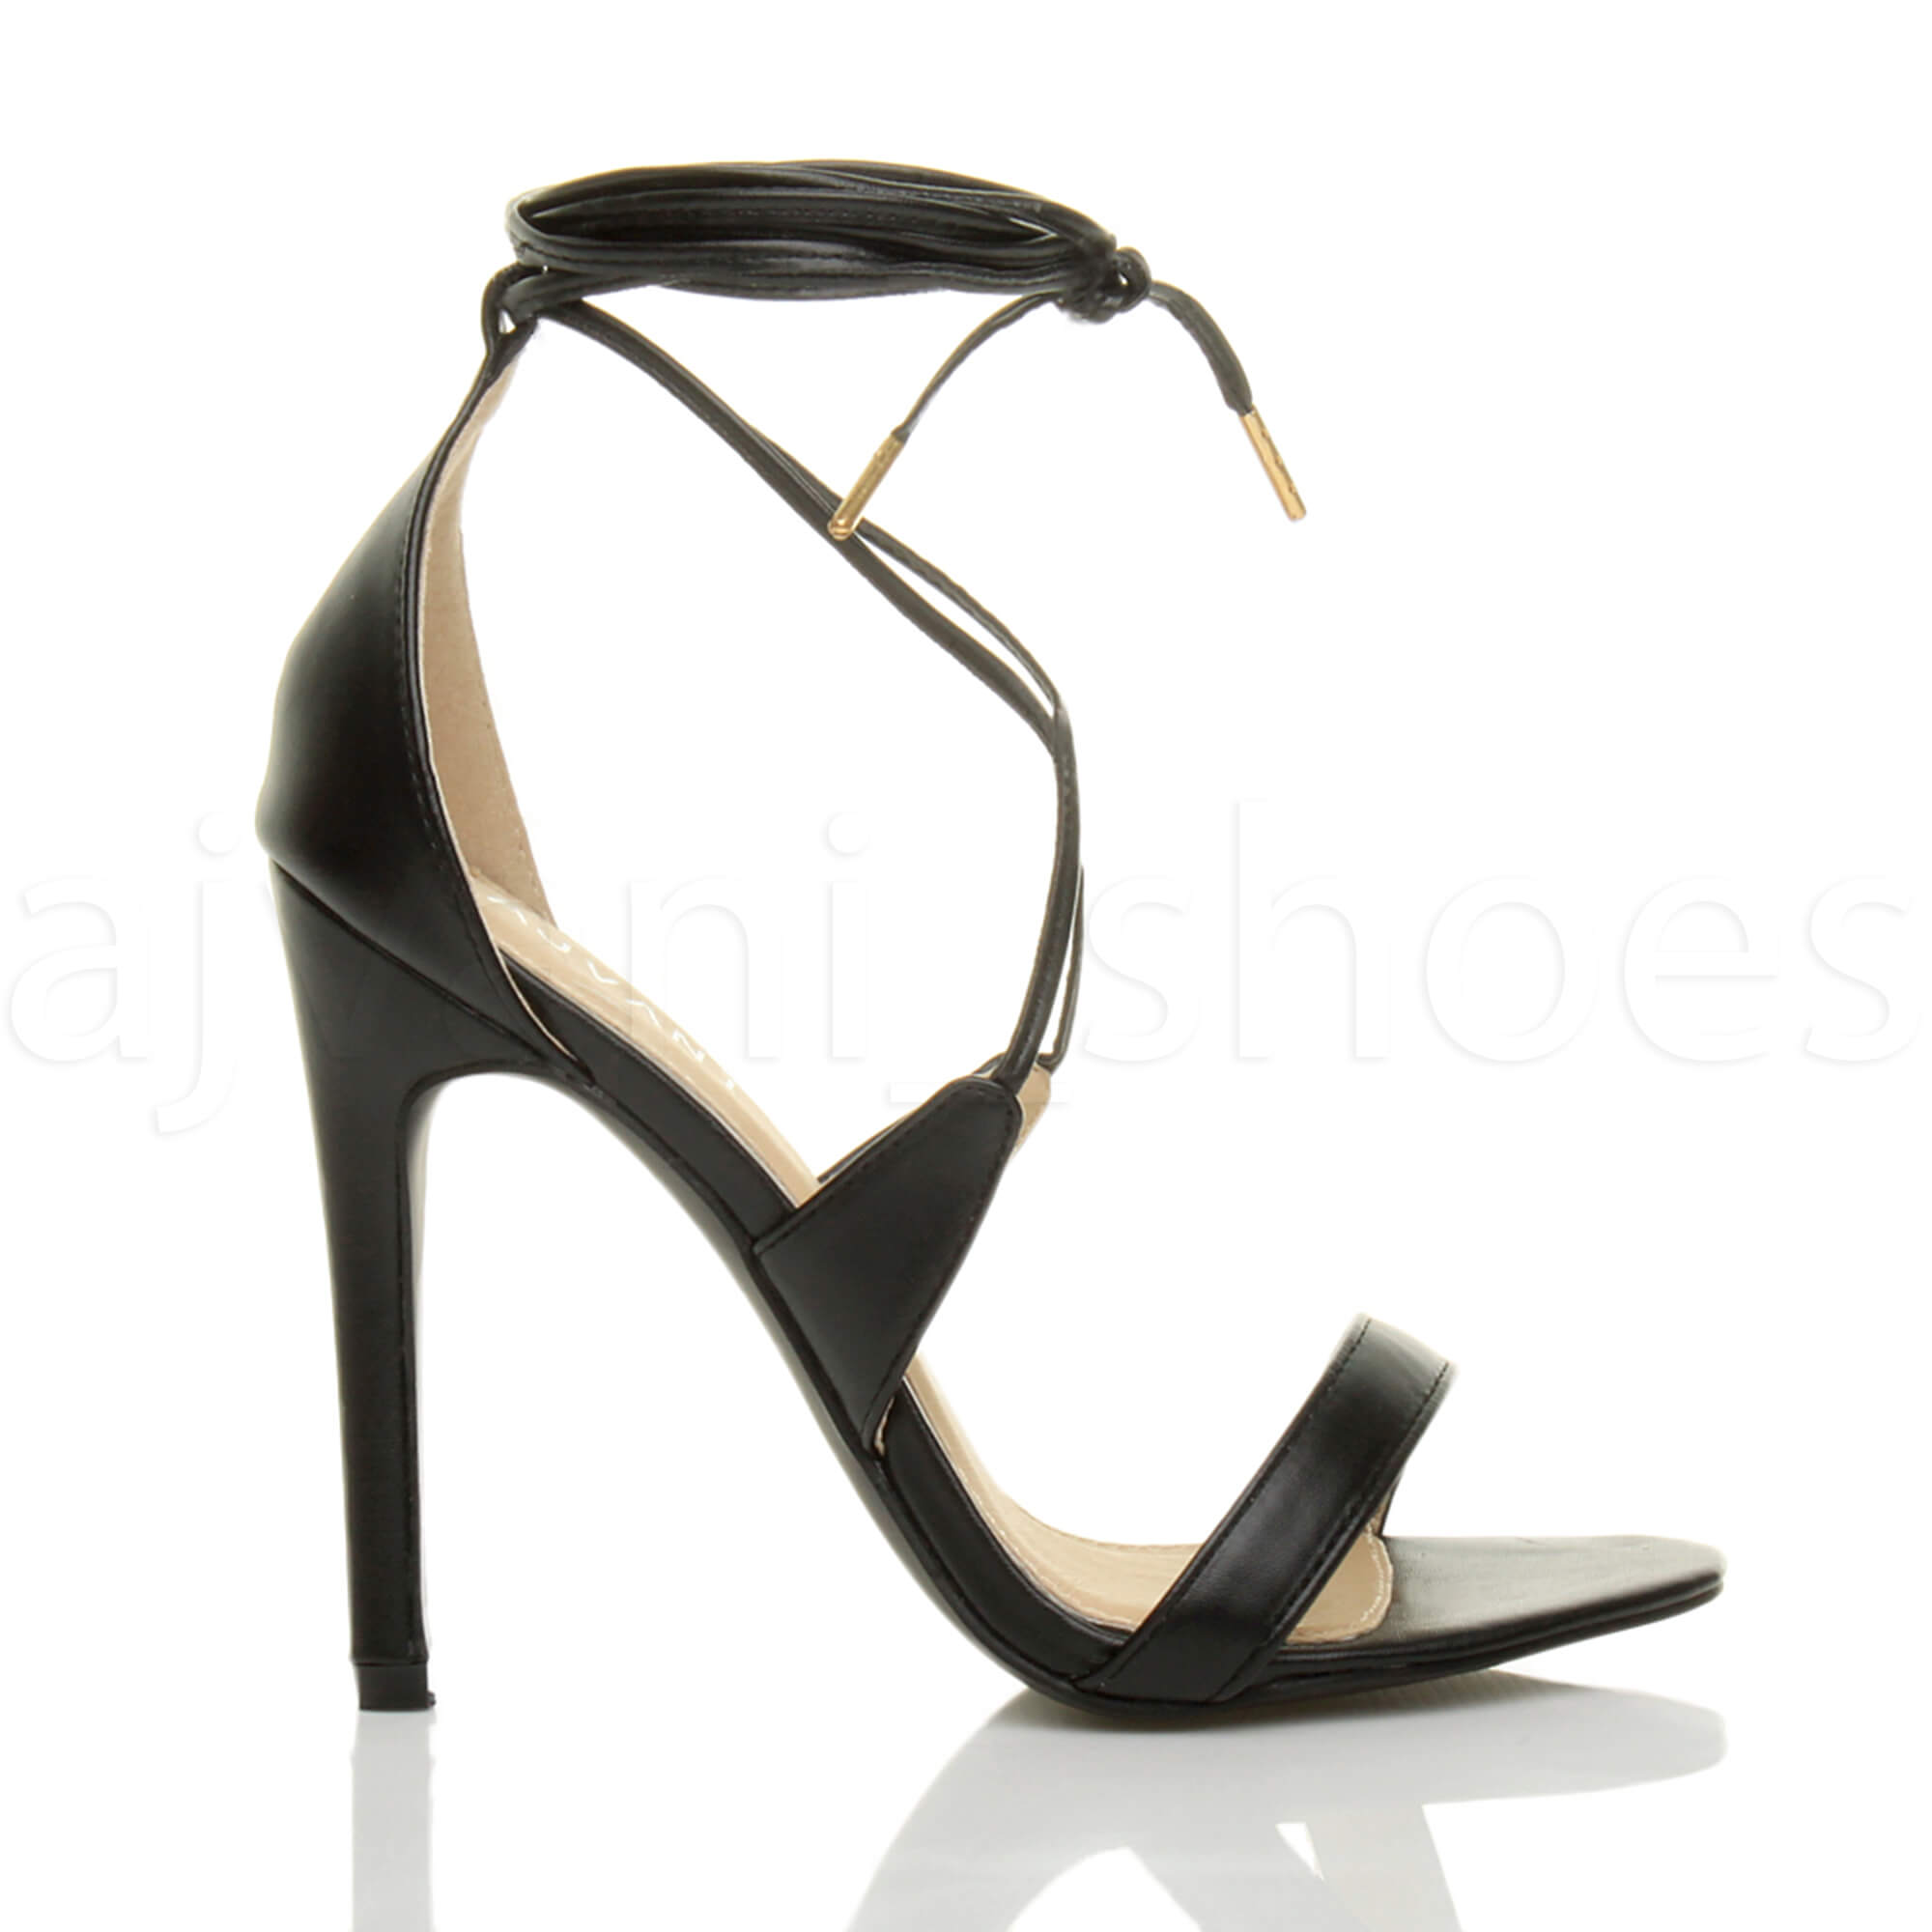 WOMENS-LADIES-HIGH-HEEL-BARELY-THERE-STRAPPY-LACE-TIE-UP-SANDALS-SHOES-SIZE thumbnail 3